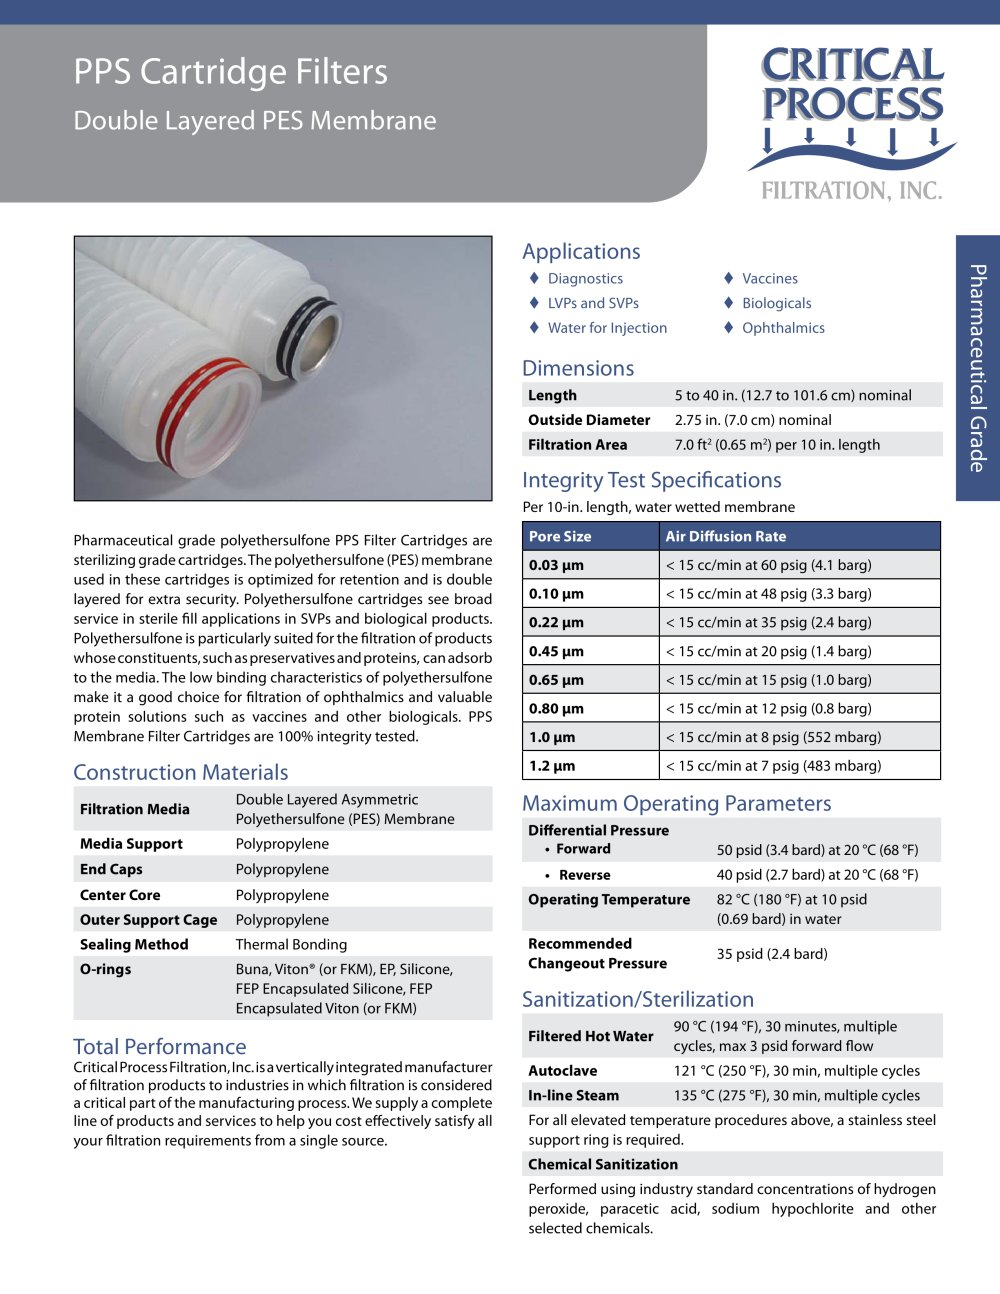 Pharma Pes Cartridge Filters Critical Process Filtration Pdf